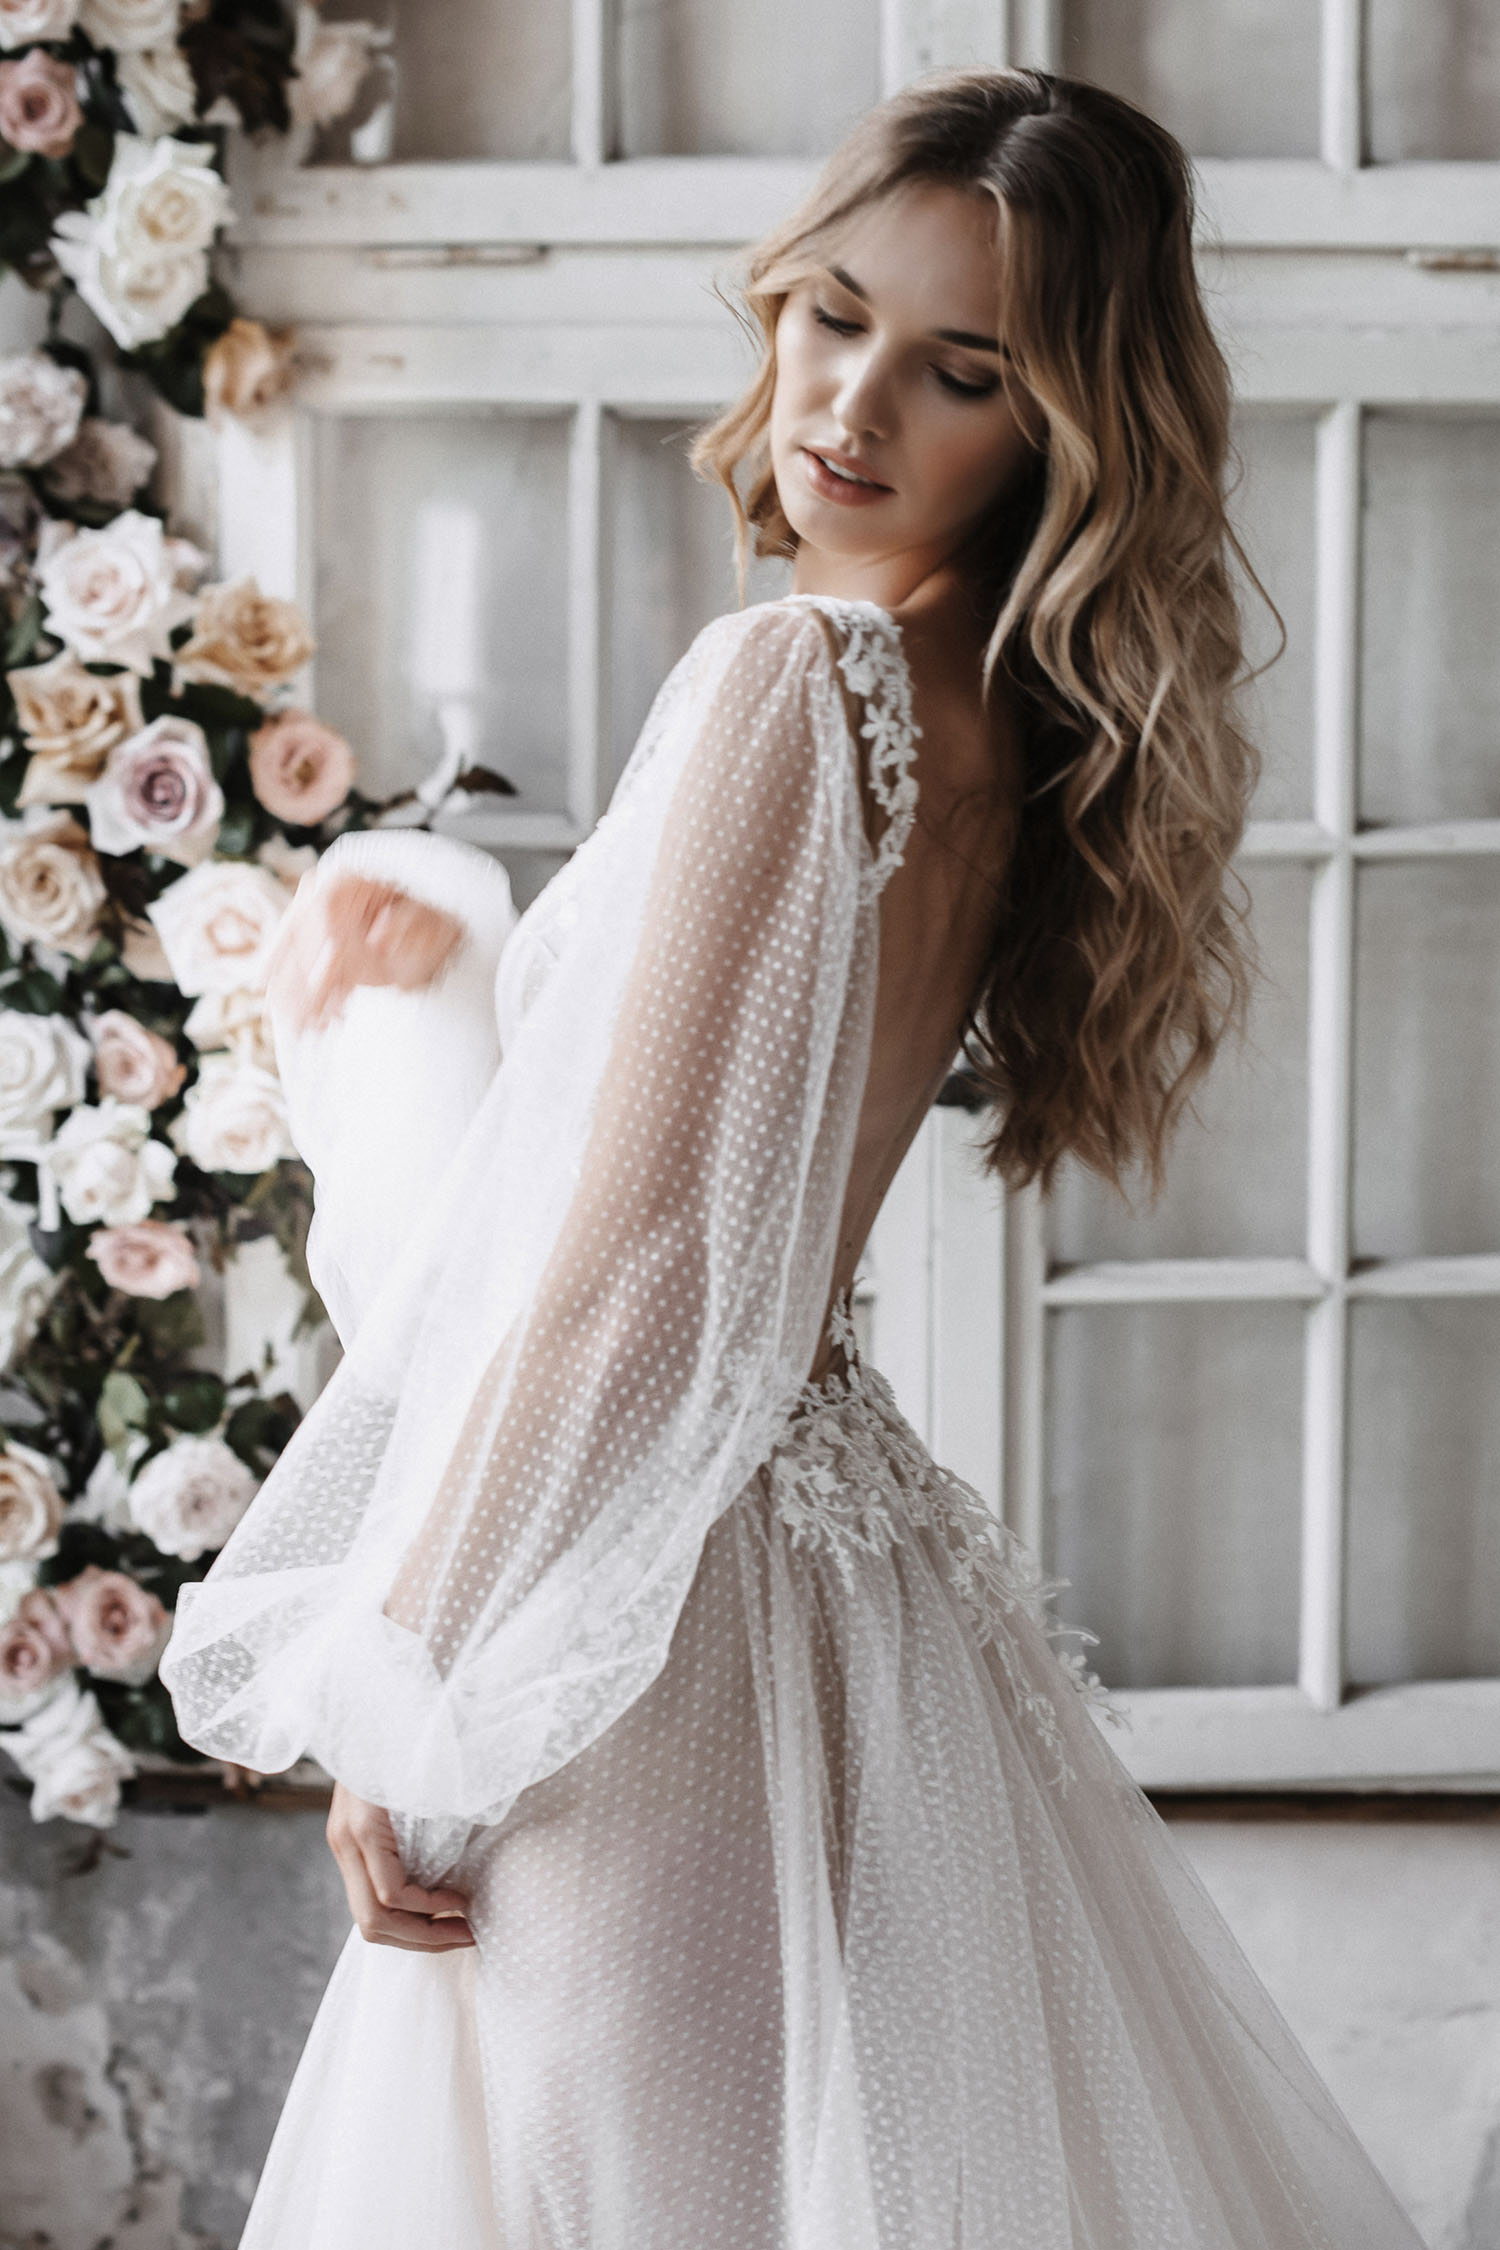 Dotted Tulle Romantic Dress